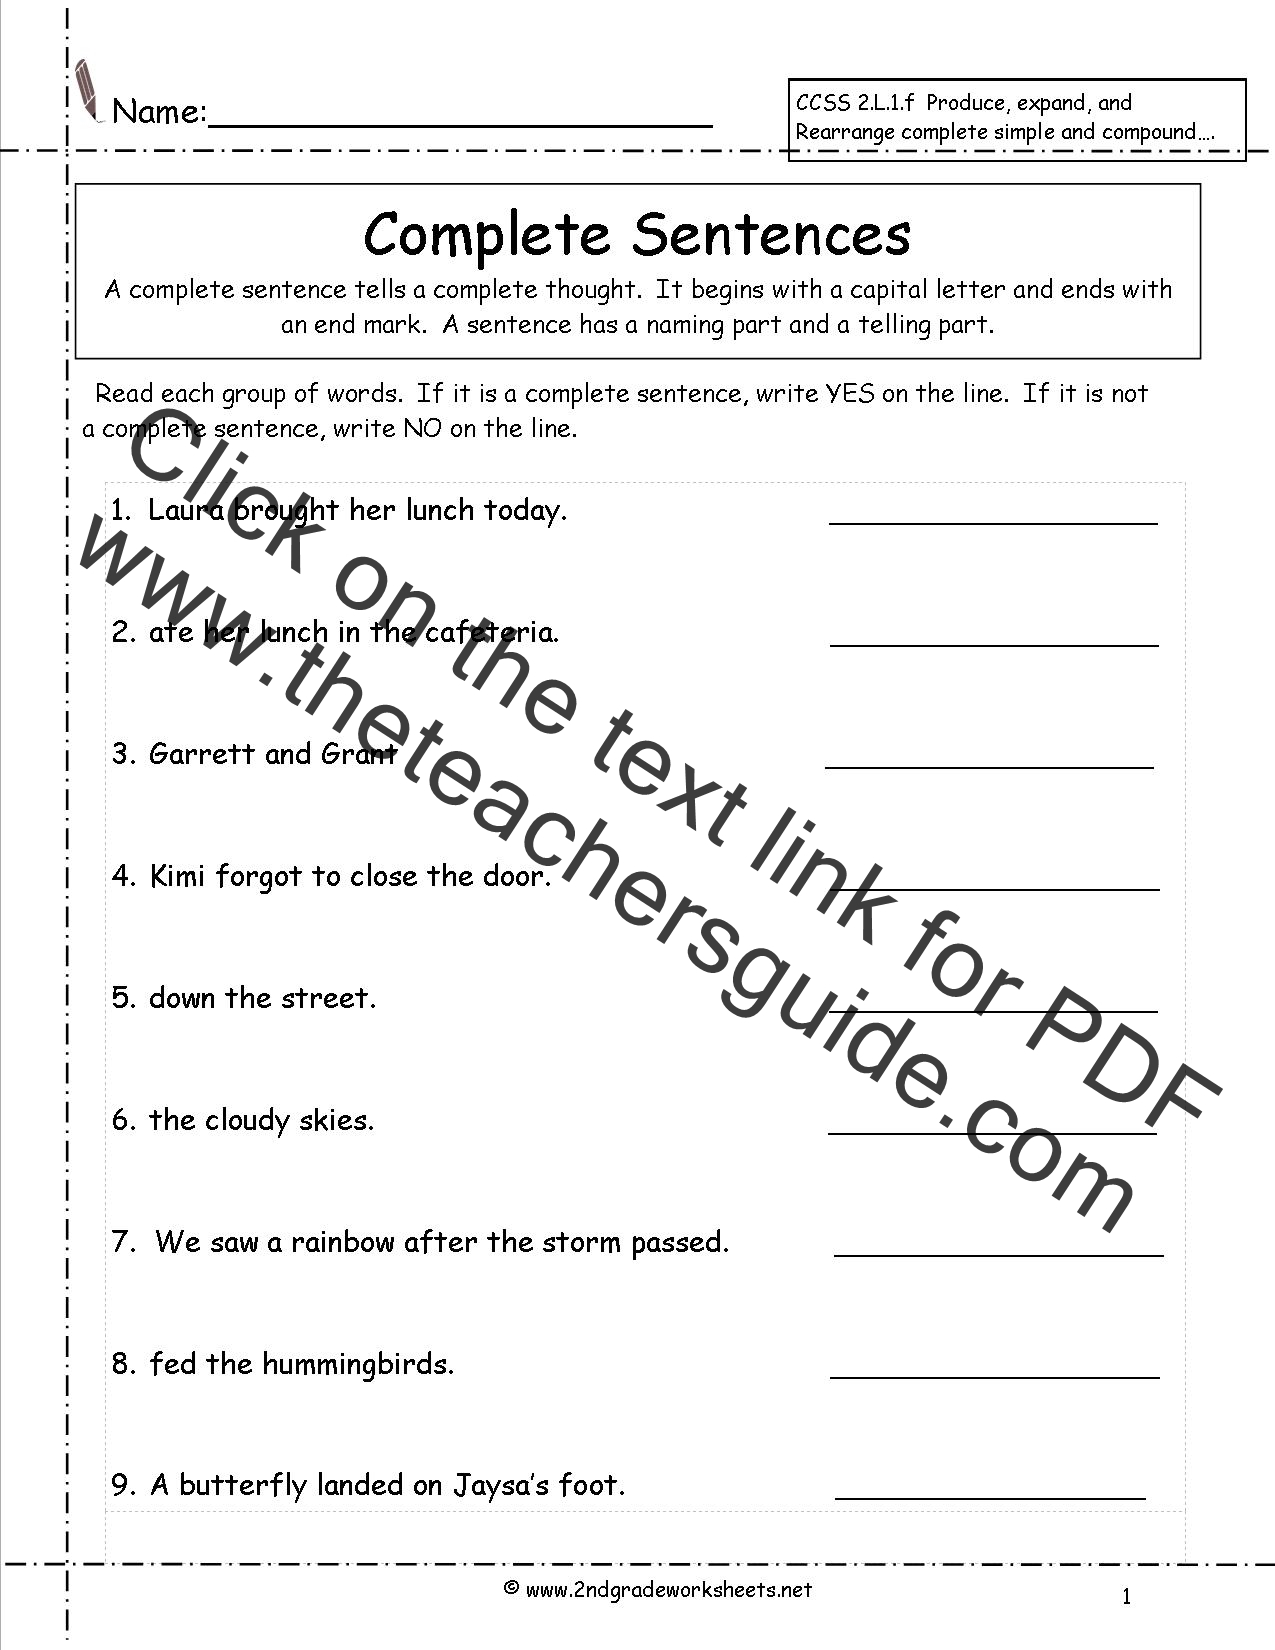 Printables Compound Sentence Worksheet second grade sentences worksheets ccss 2 l 1 f complete worksheets